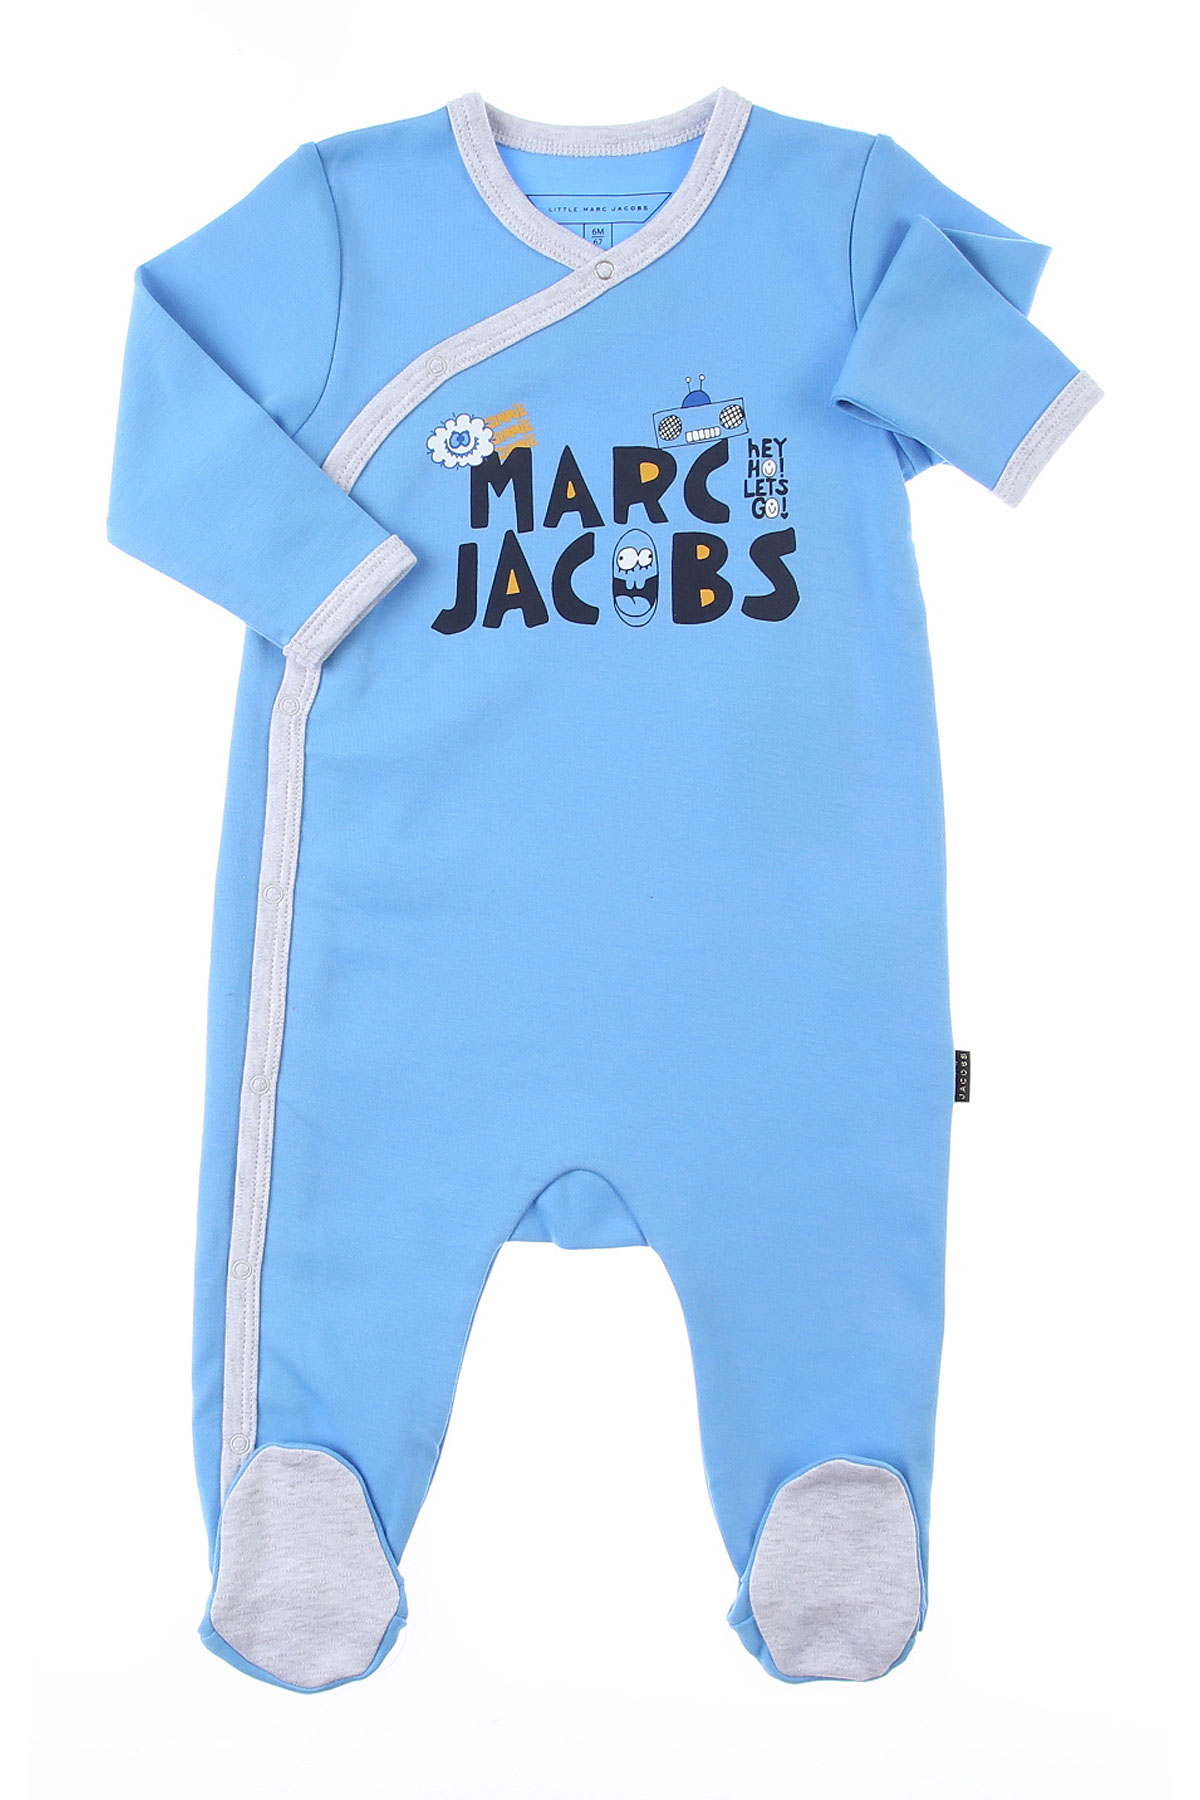 Marc Jacobs Baby Bodysuits & Onesies for Boys On Sale, Sky, Cotton, 2019, 3M 6M